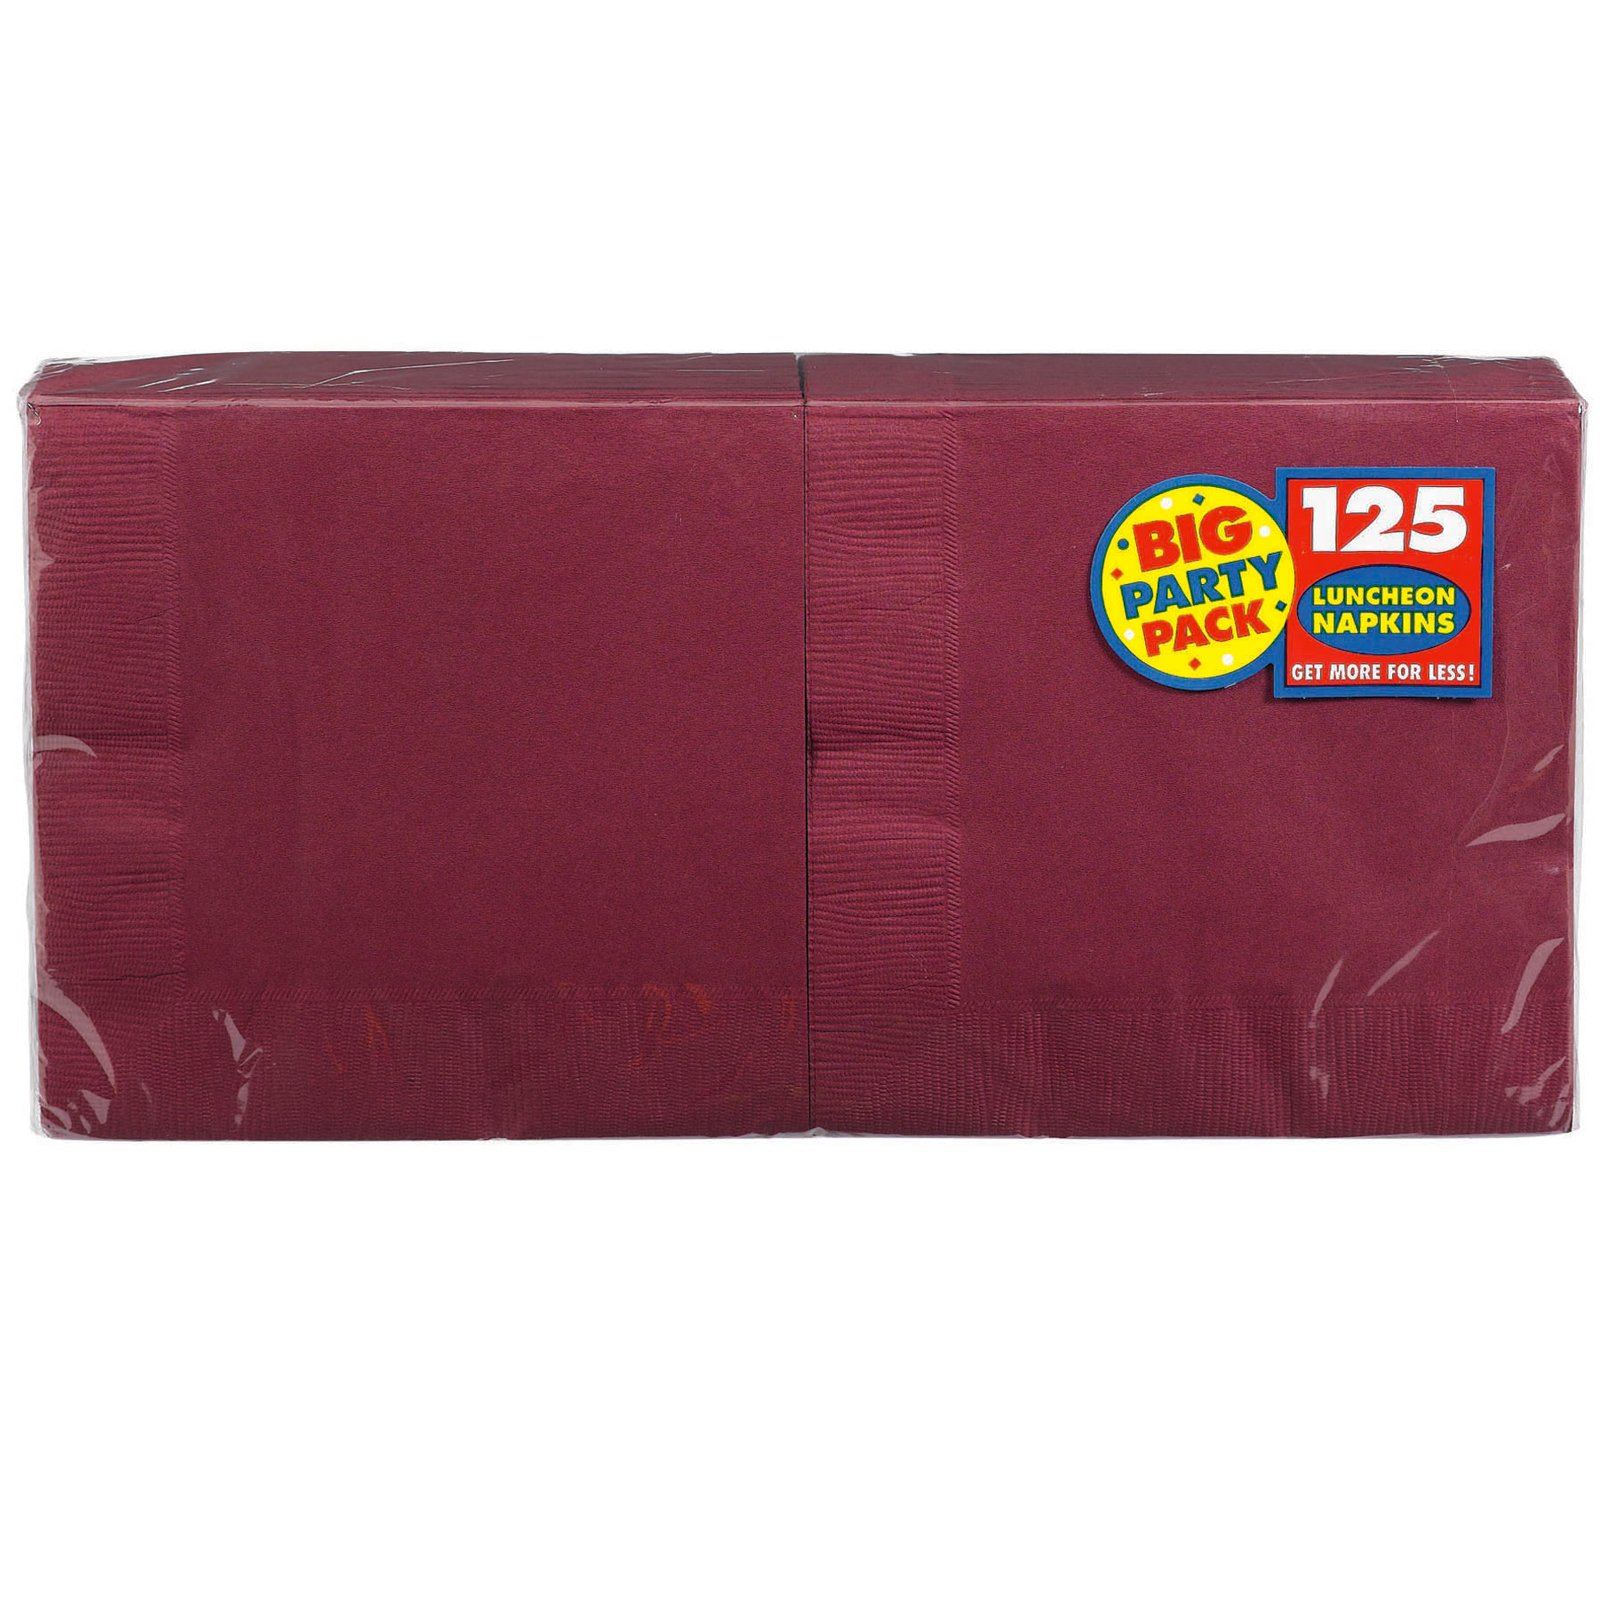 Berry Big Party Pack - Lunch Napkins (125 count)